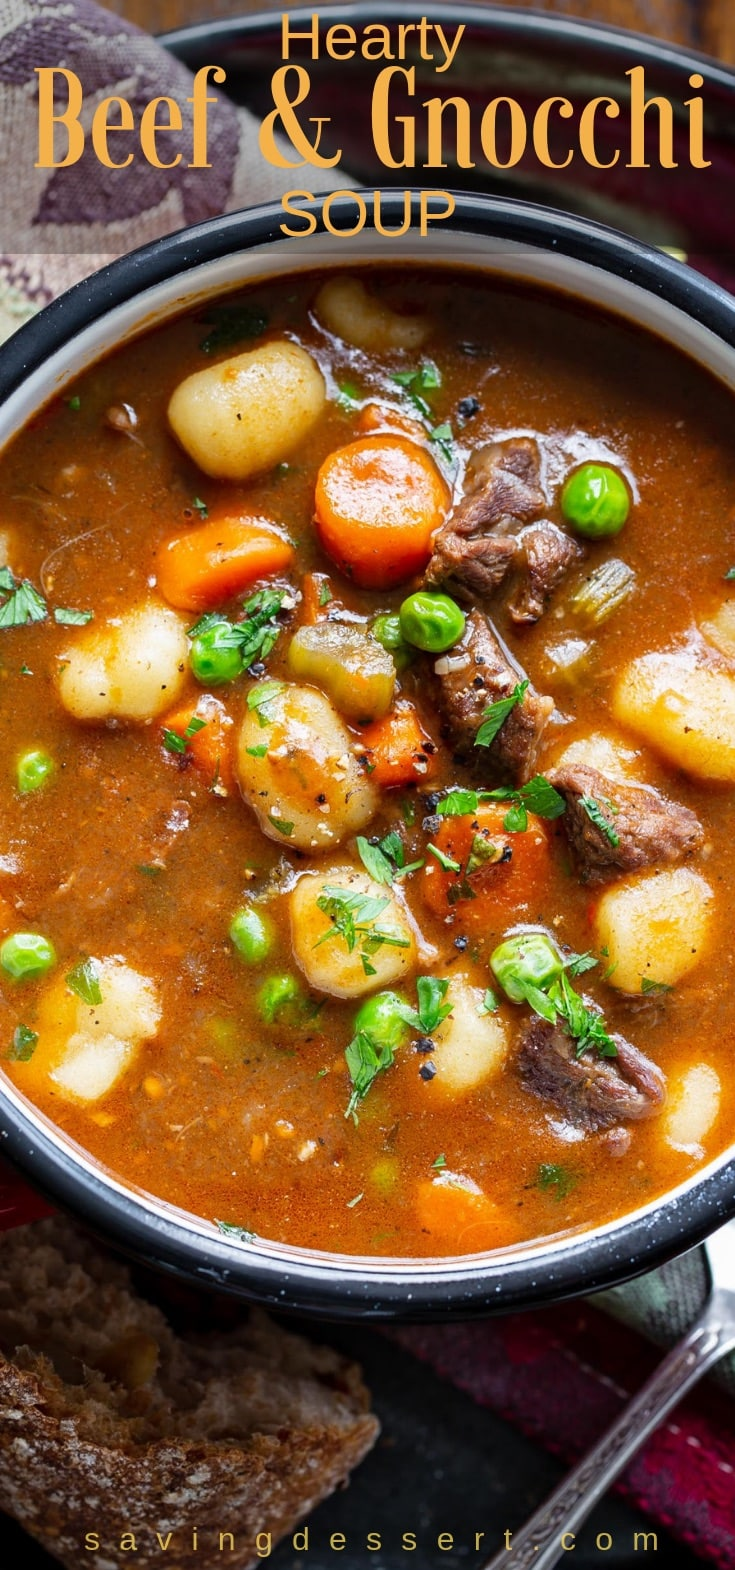 A bowl of hearty beef and gnocchi soup with peas and carrots garnished with parsley